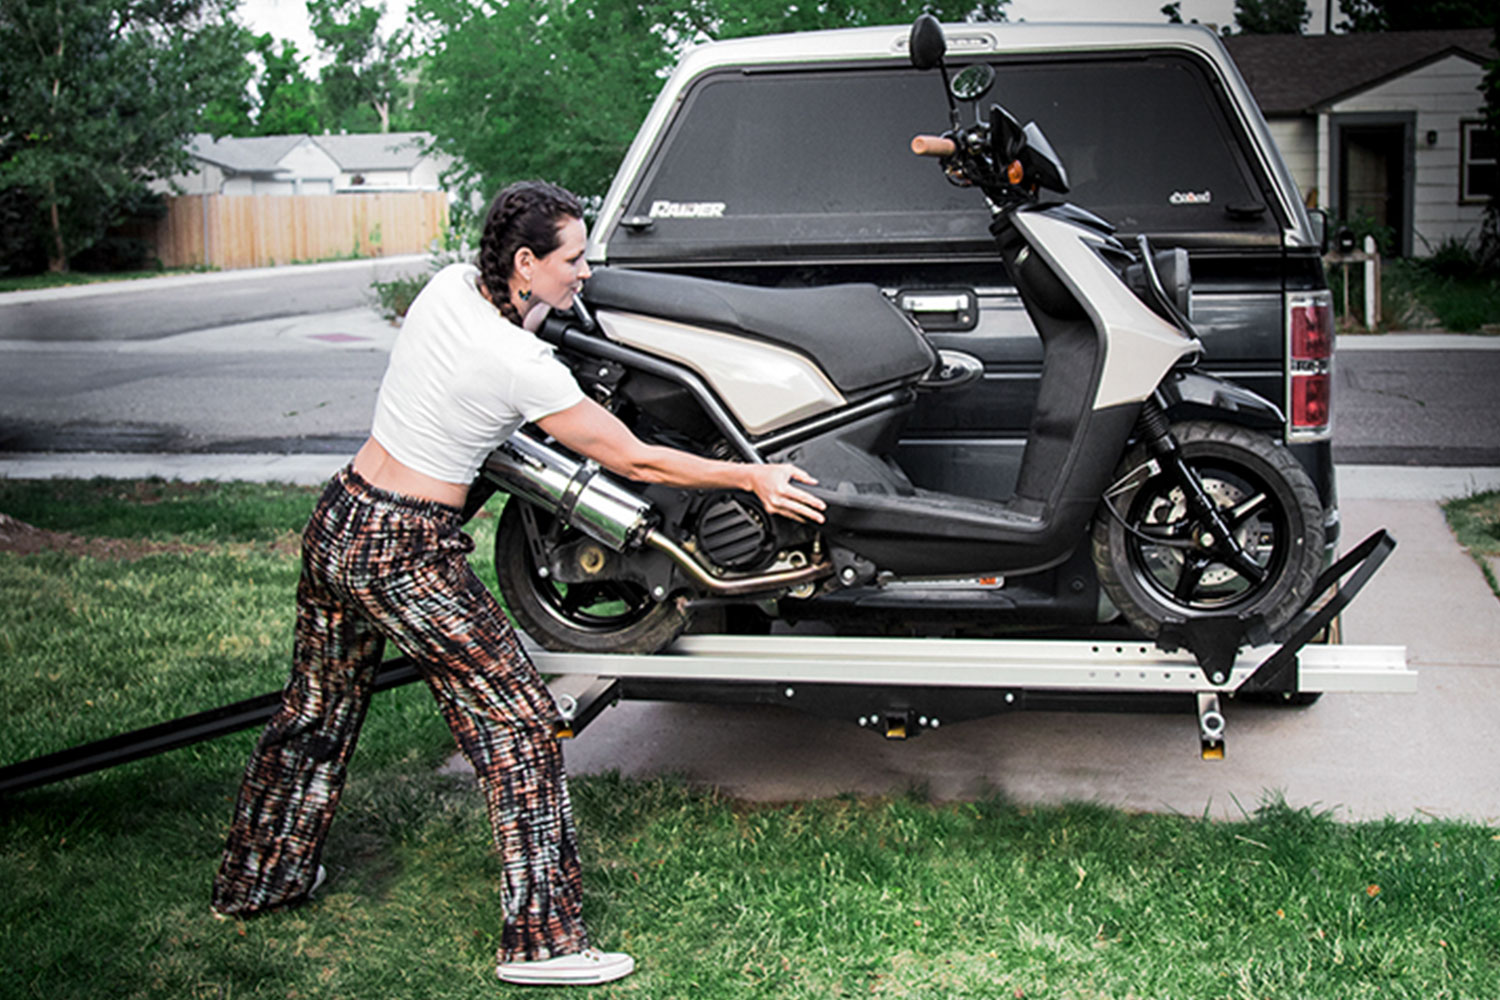 Discount Ramps Black Widow Deluxe Motorcycle Carrier on truck